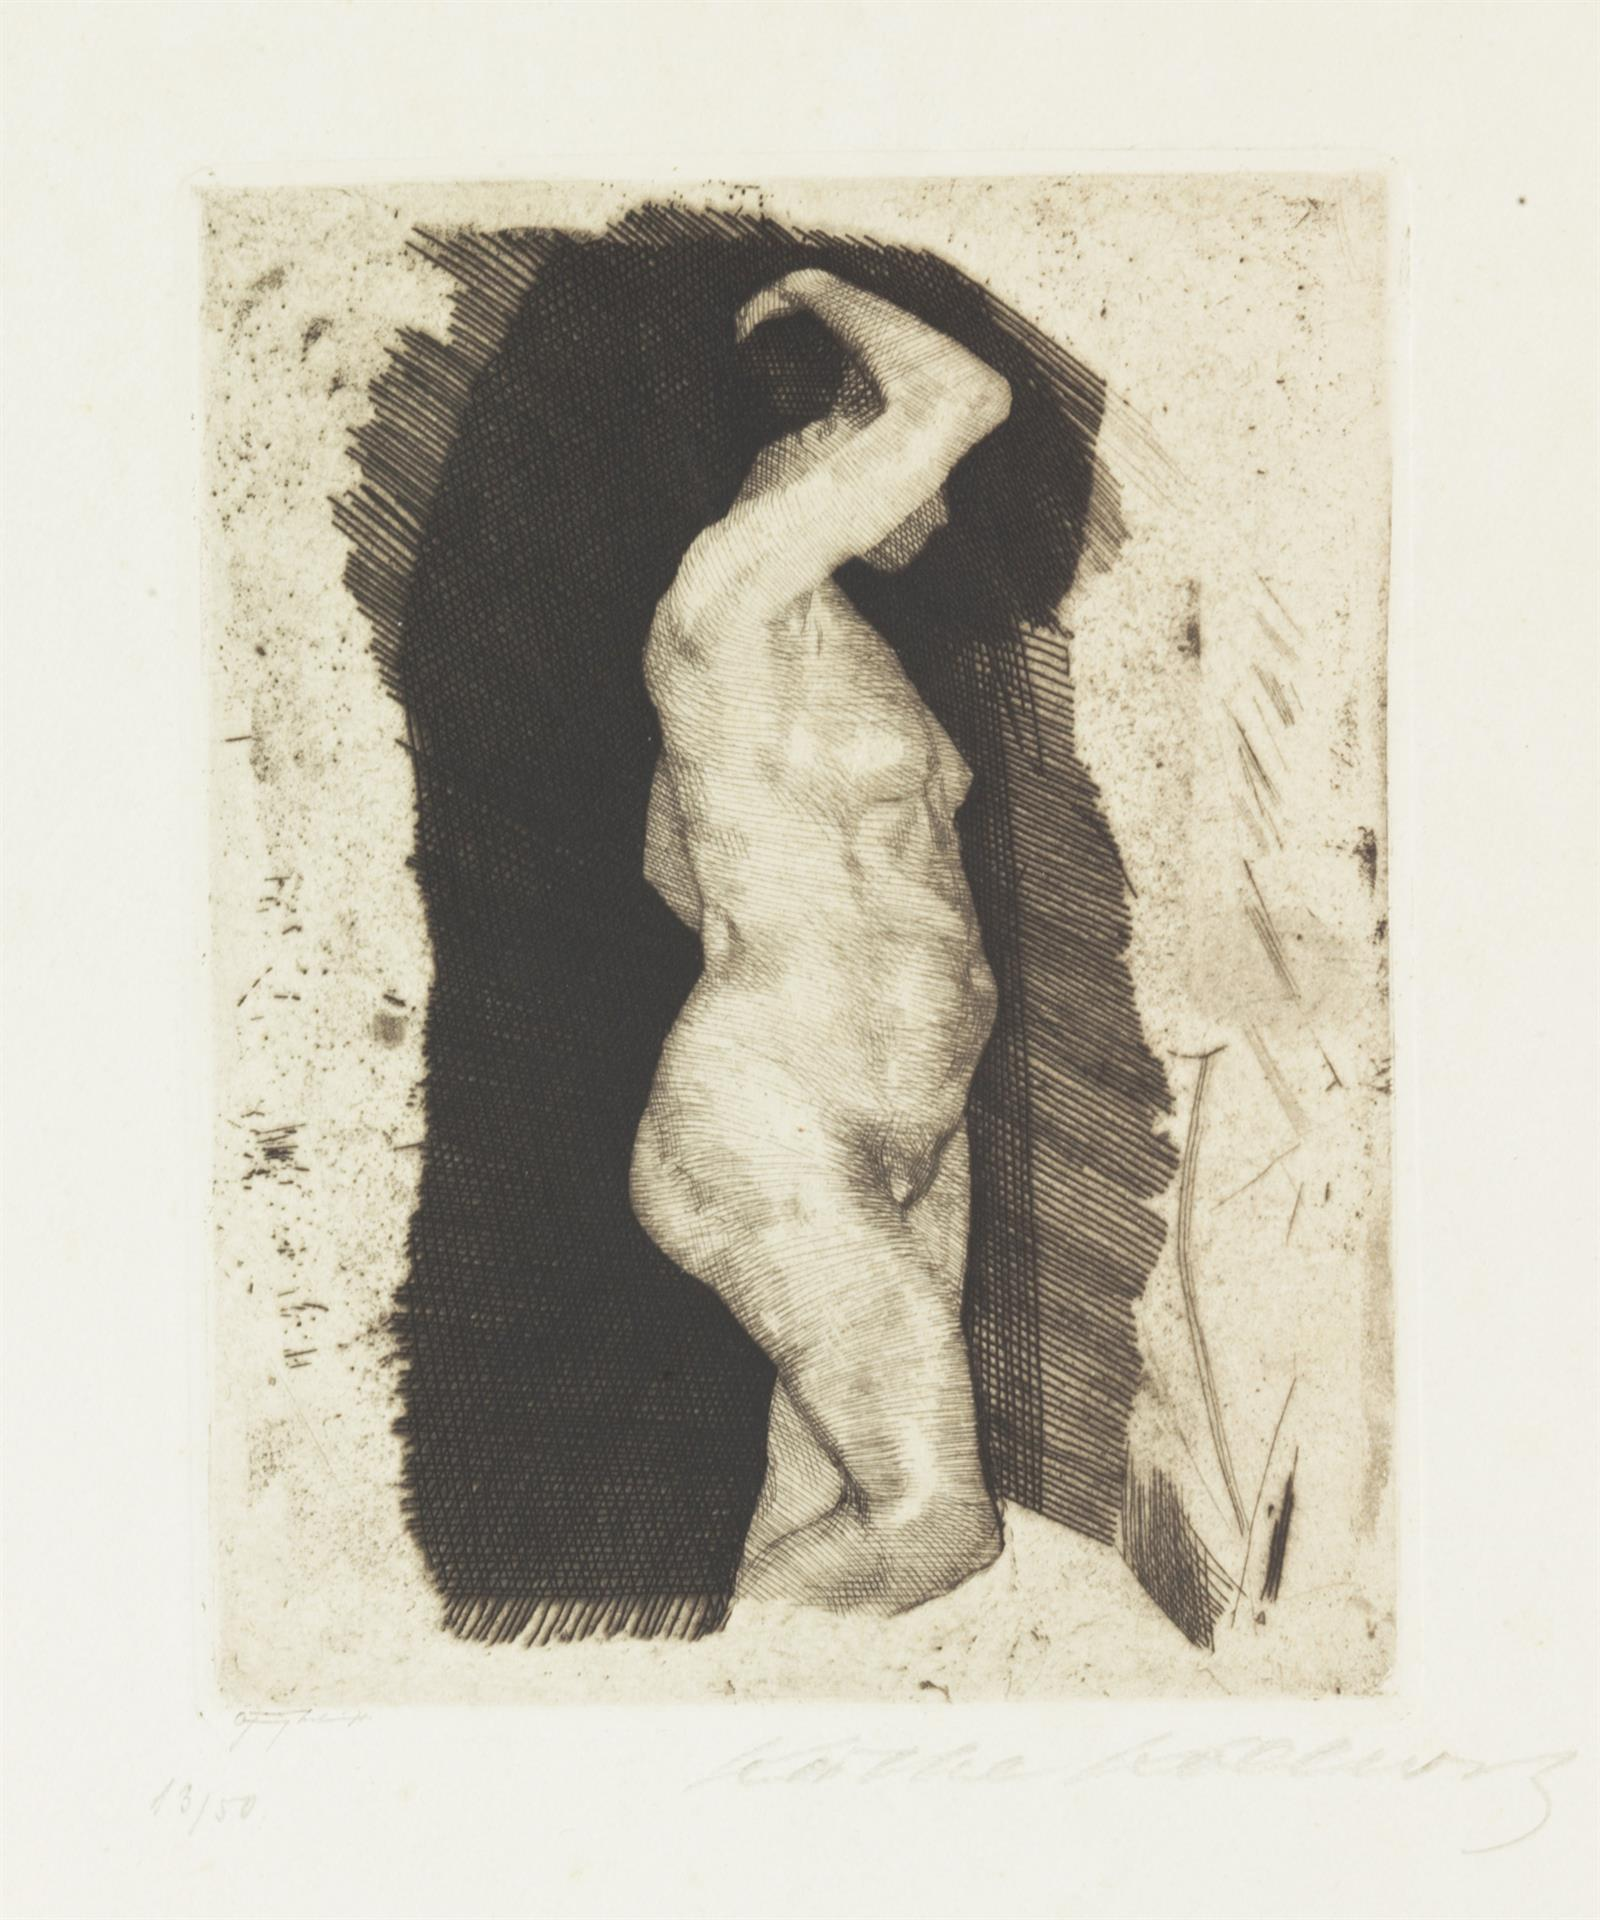 Käthe Kollwitz, Standing Female Nude, 1900, line etching and drypoint on copperplate paper, Kn 50 II c, Cologne Kollwitz Collection © Käthe Kollwitz Museum Köln